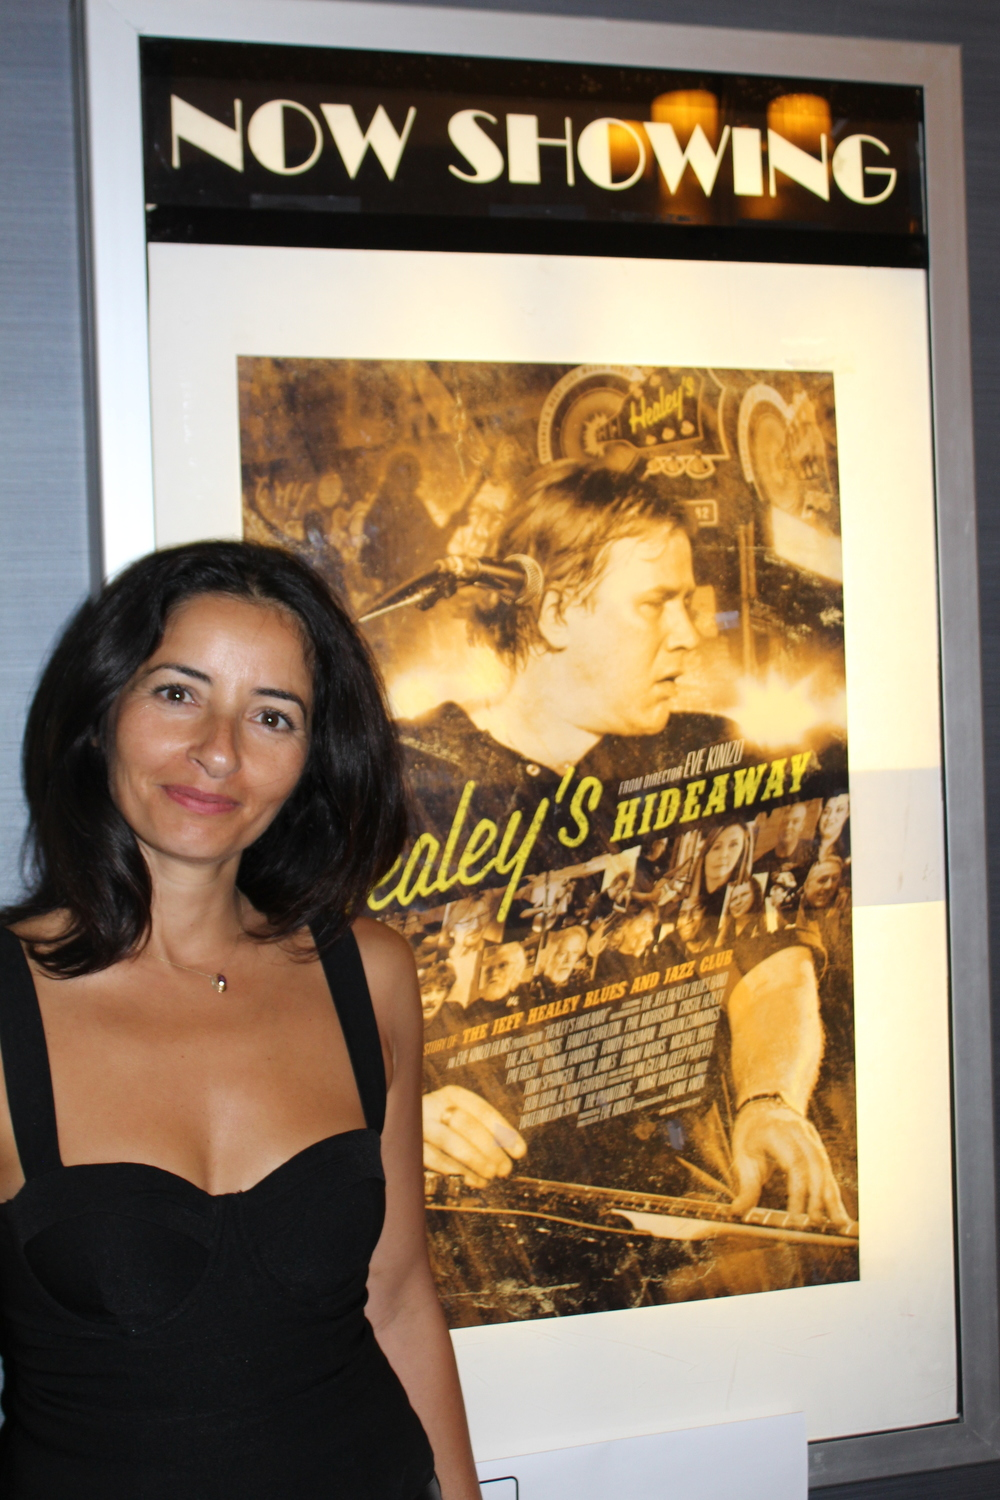 Eve Kinizo @ the Healey's Hideaway screening